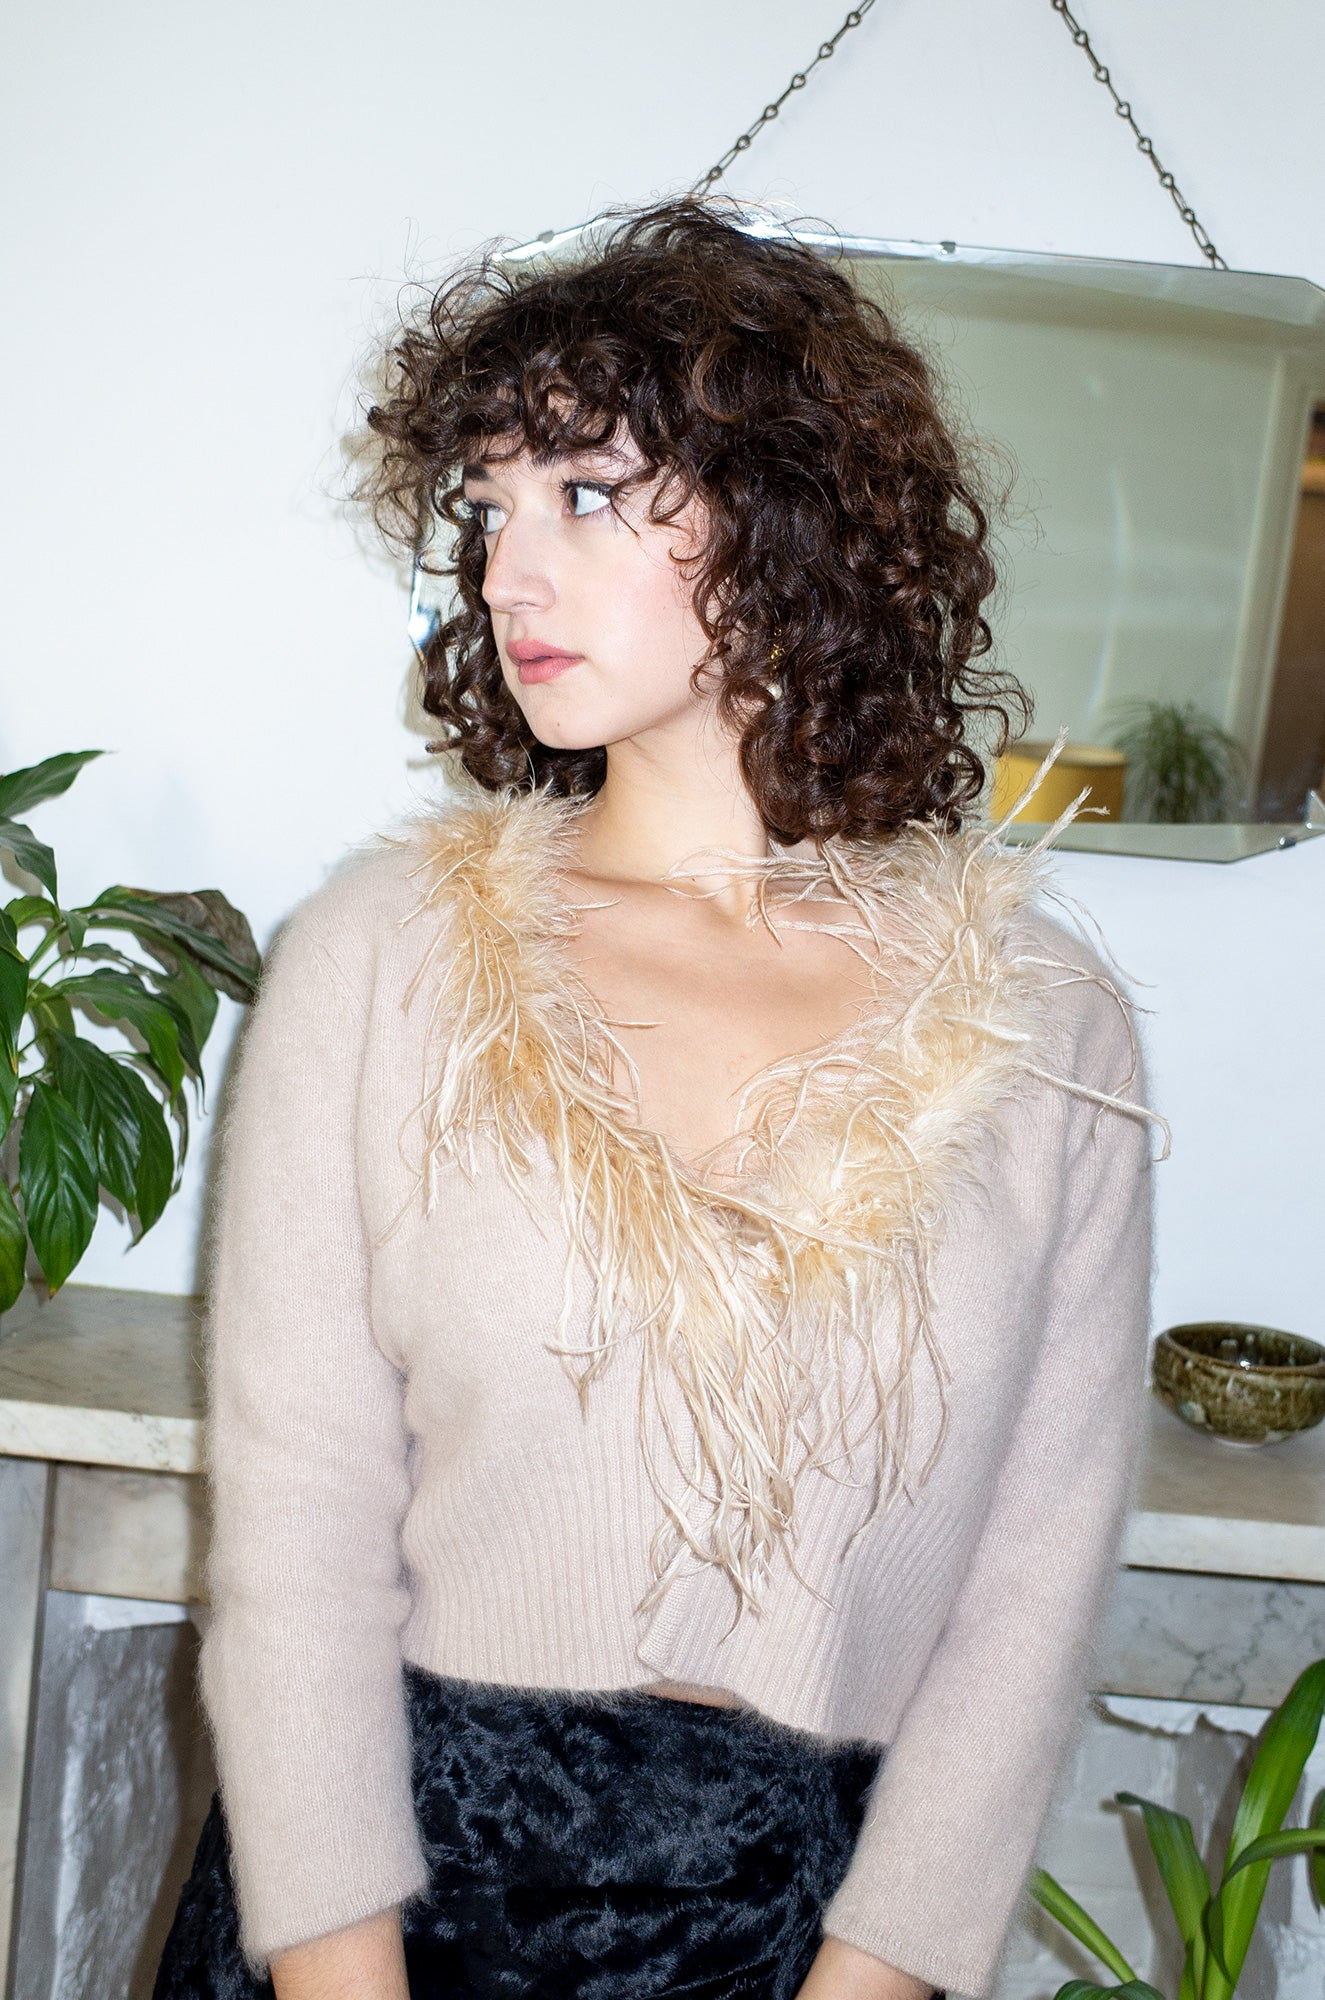 Model wears vintage ostrich trim angora cardigan by Human Sea Vintage